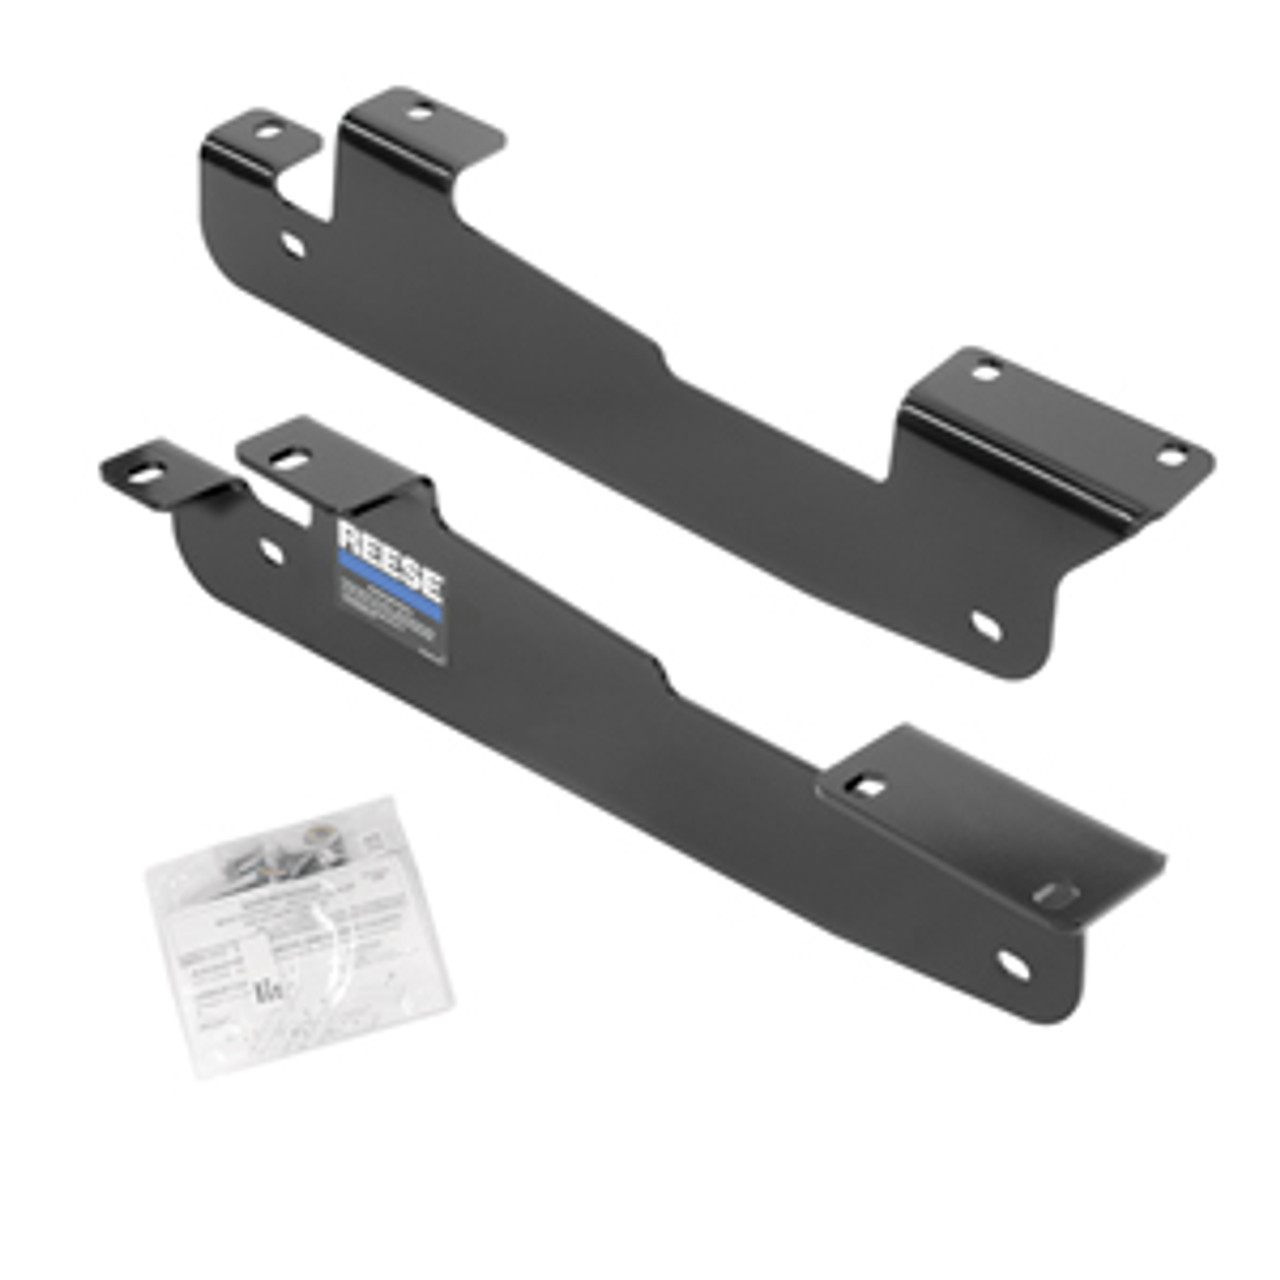 56006 --- Fifth Wheel Trailer Hitch Outboard Bracket Kit for F150 Pickups